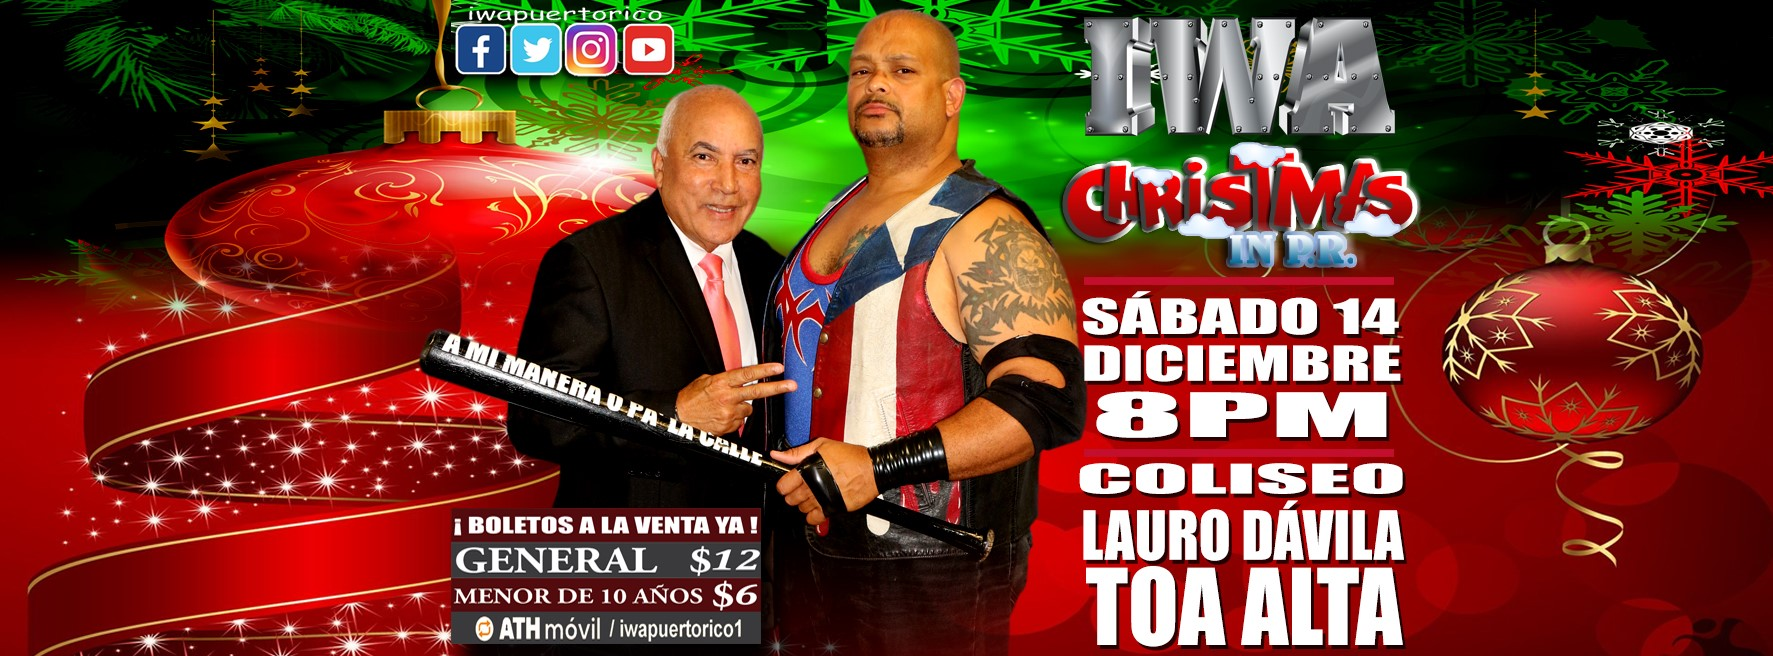 Cartel final para Christmas in PR - Savio Vega frente a Thunder 1